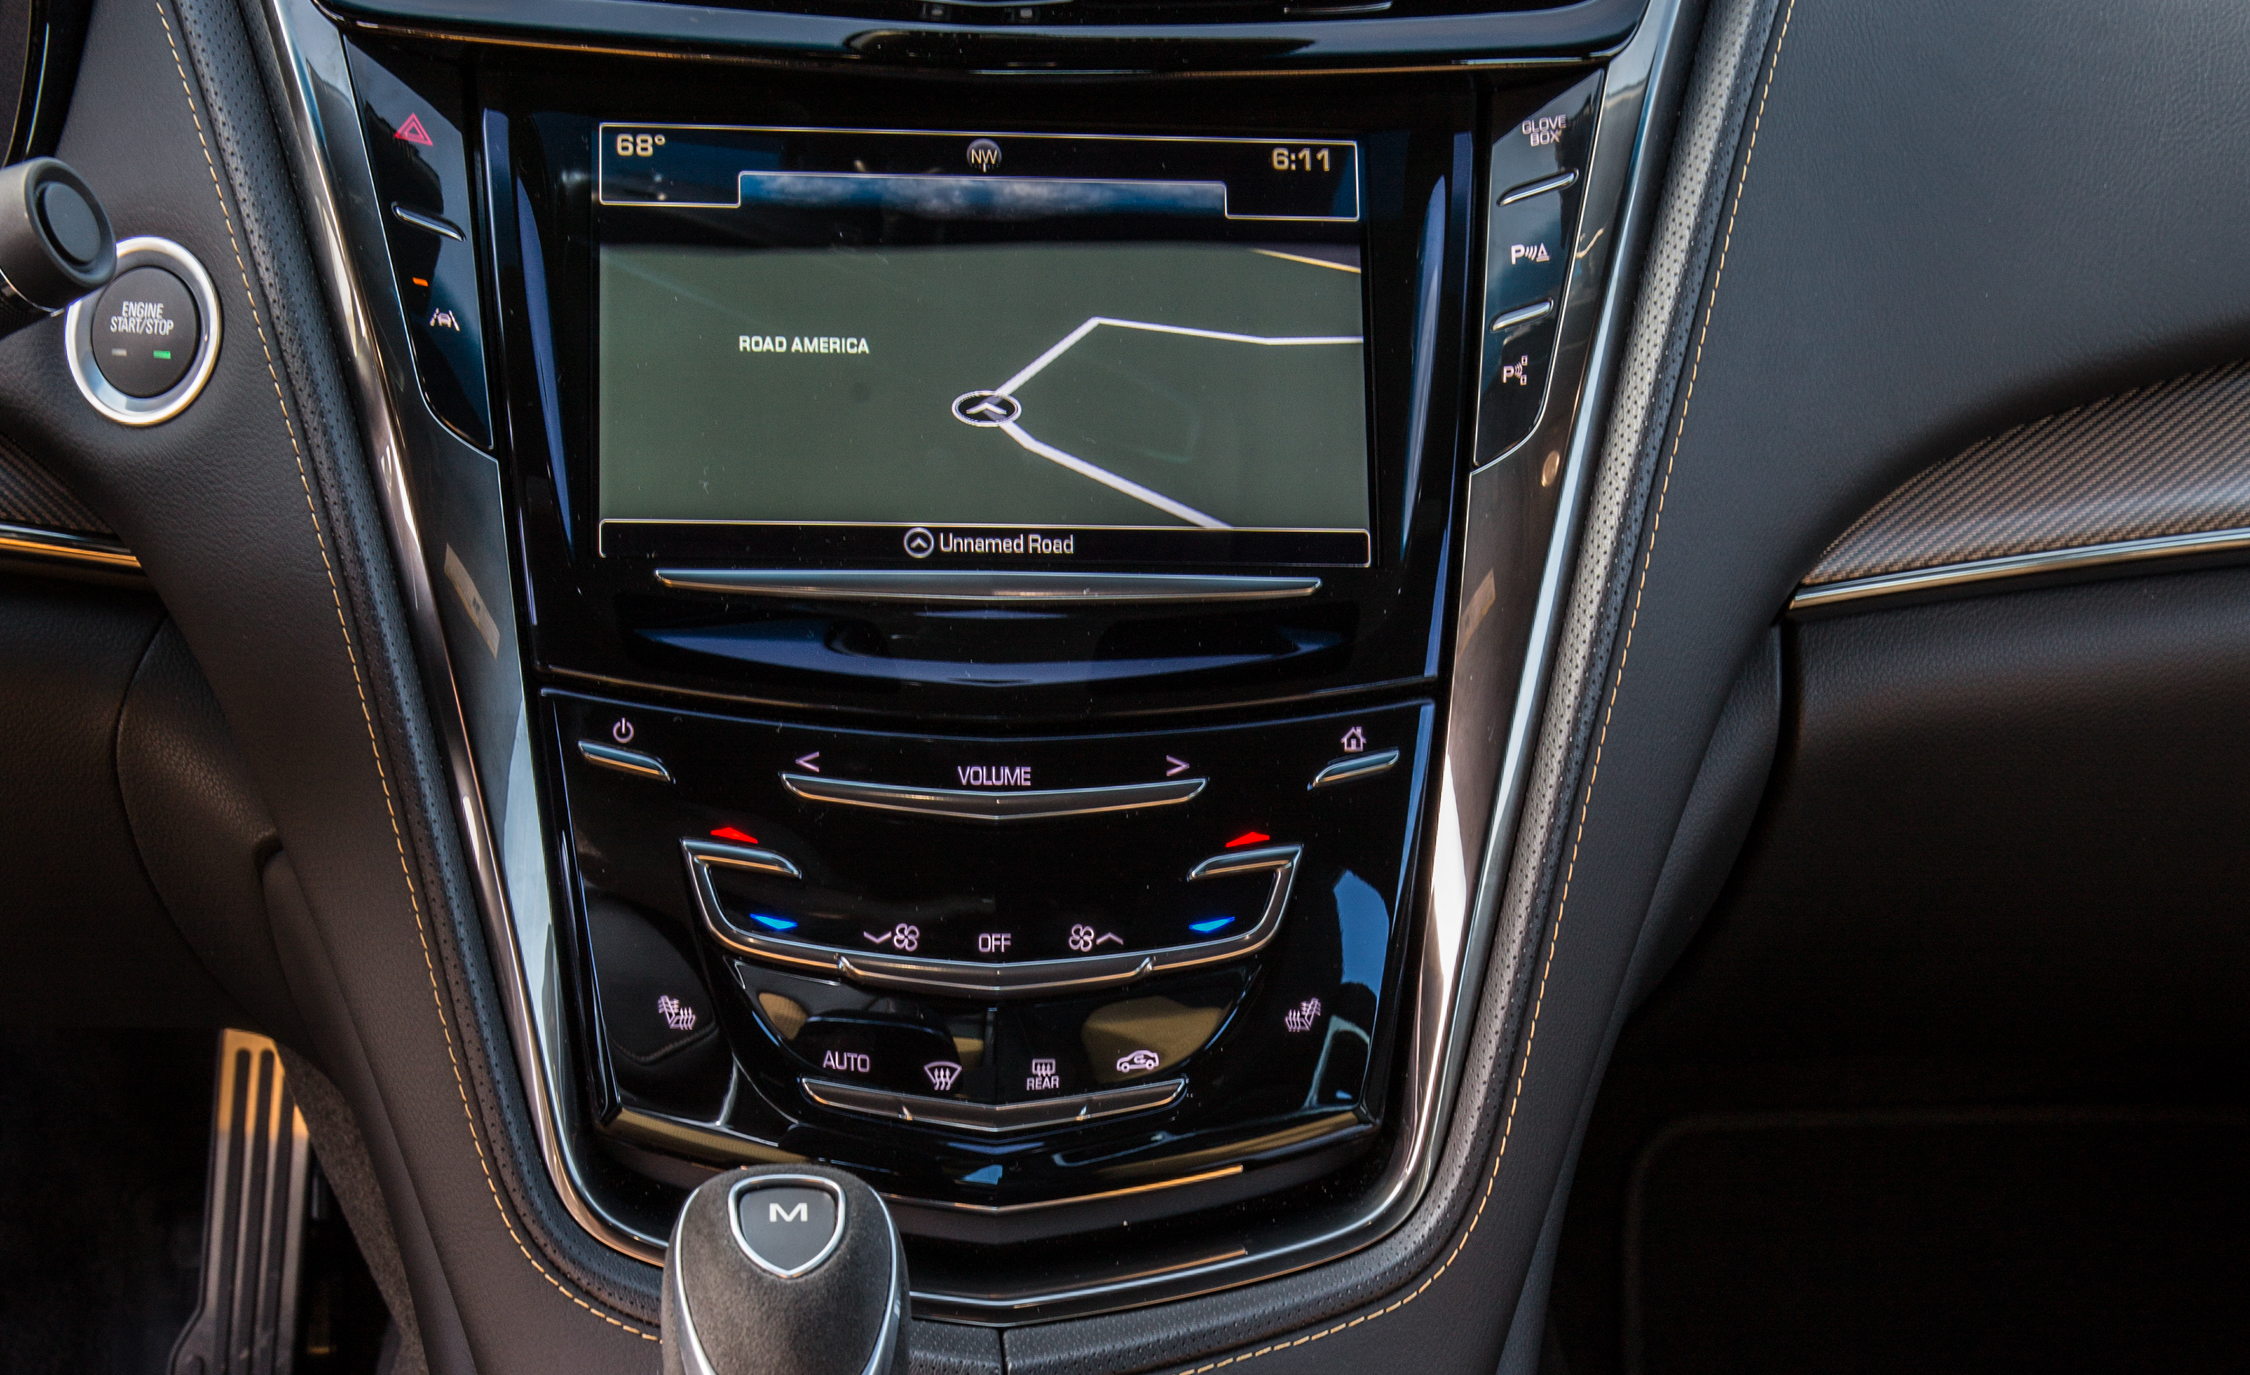 2016 Cadillac CTS-V Interior Center Head Unit